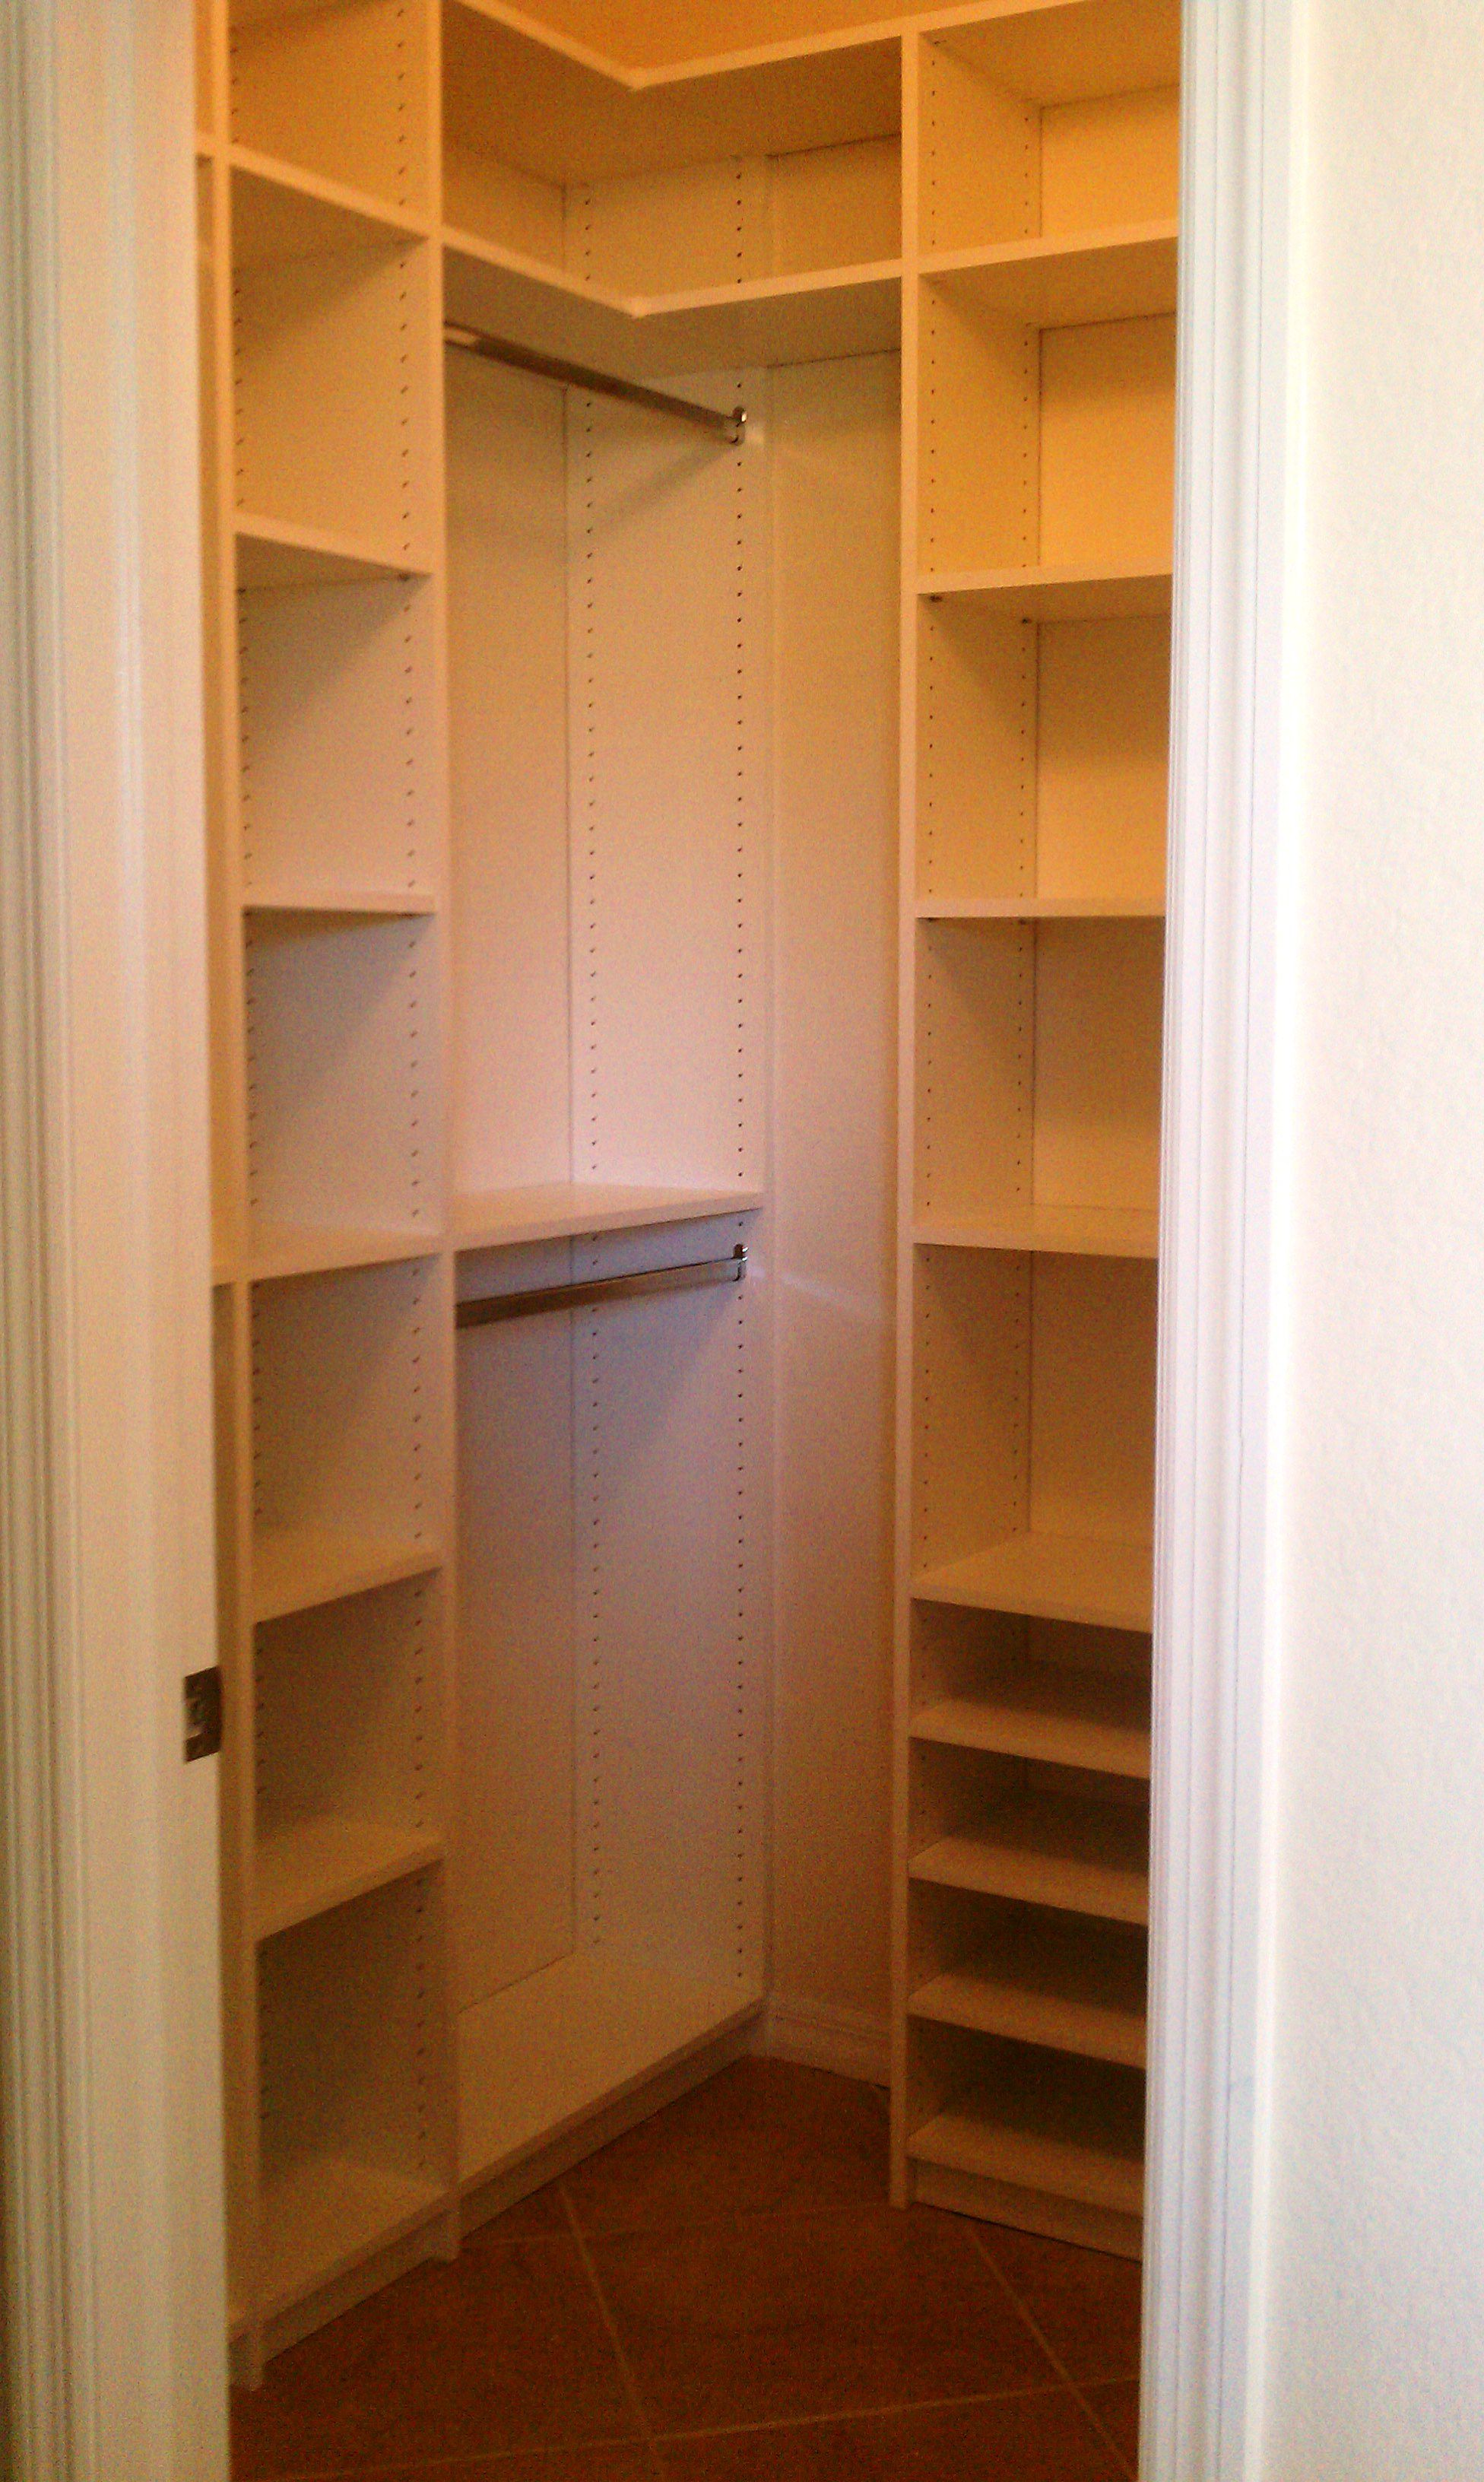 Adorable Design Of The Small Closet Design With Brown Wooden Shelves Added  With Brown Wooden Floor